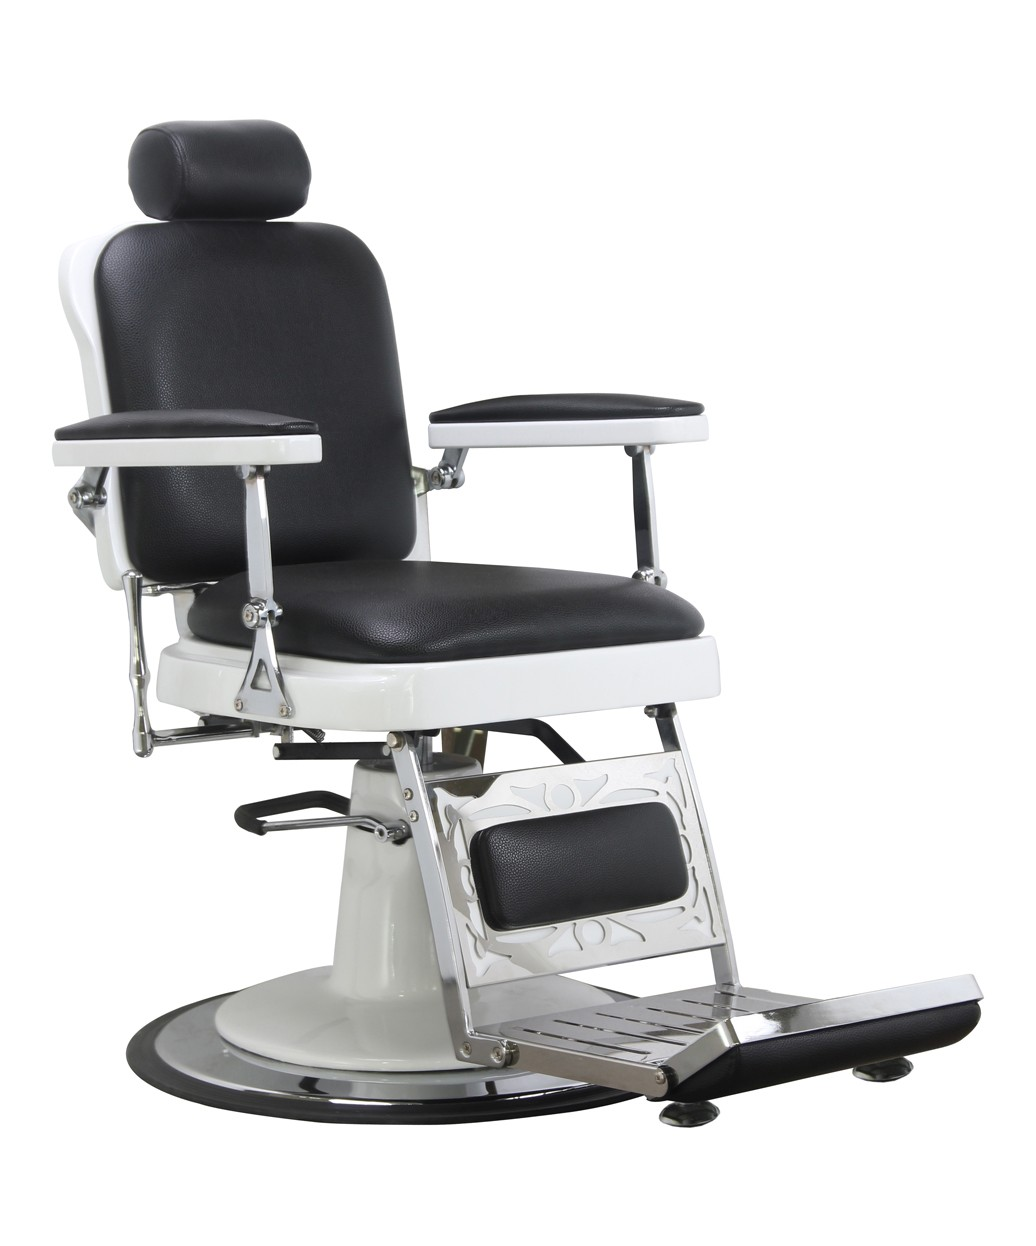 professional barber chair reviews folding meaning elvis